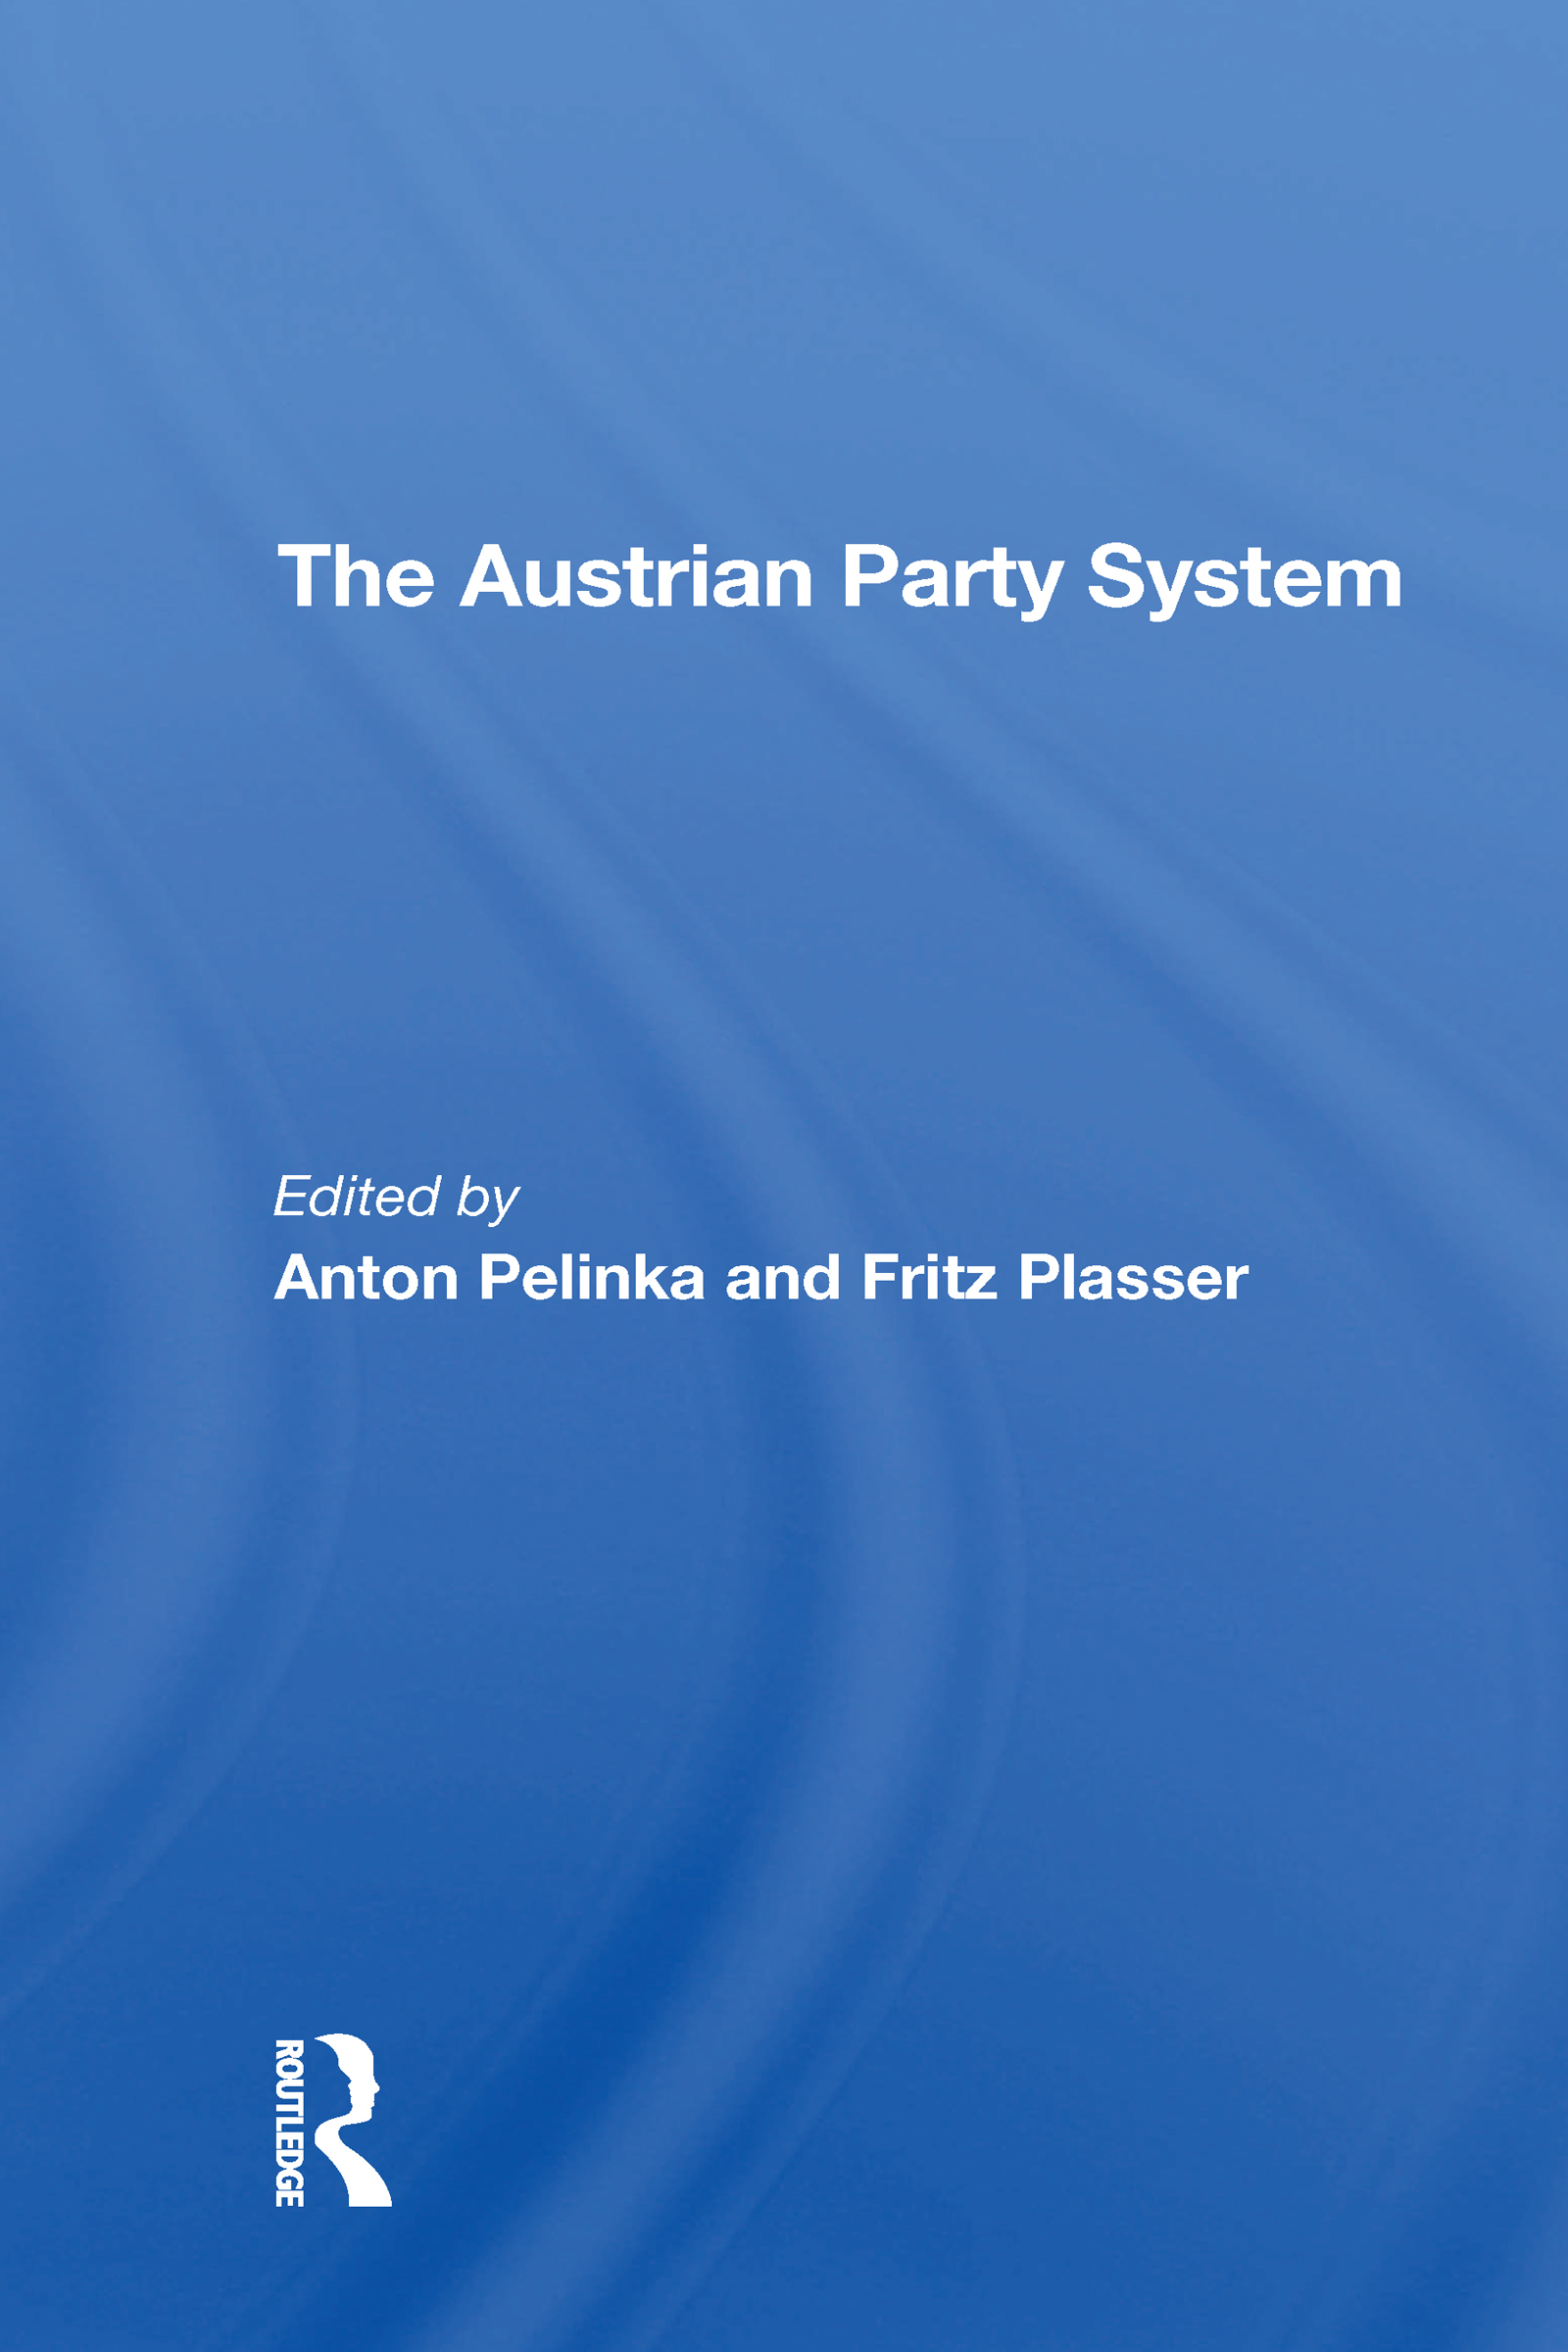 The Austrian Party System